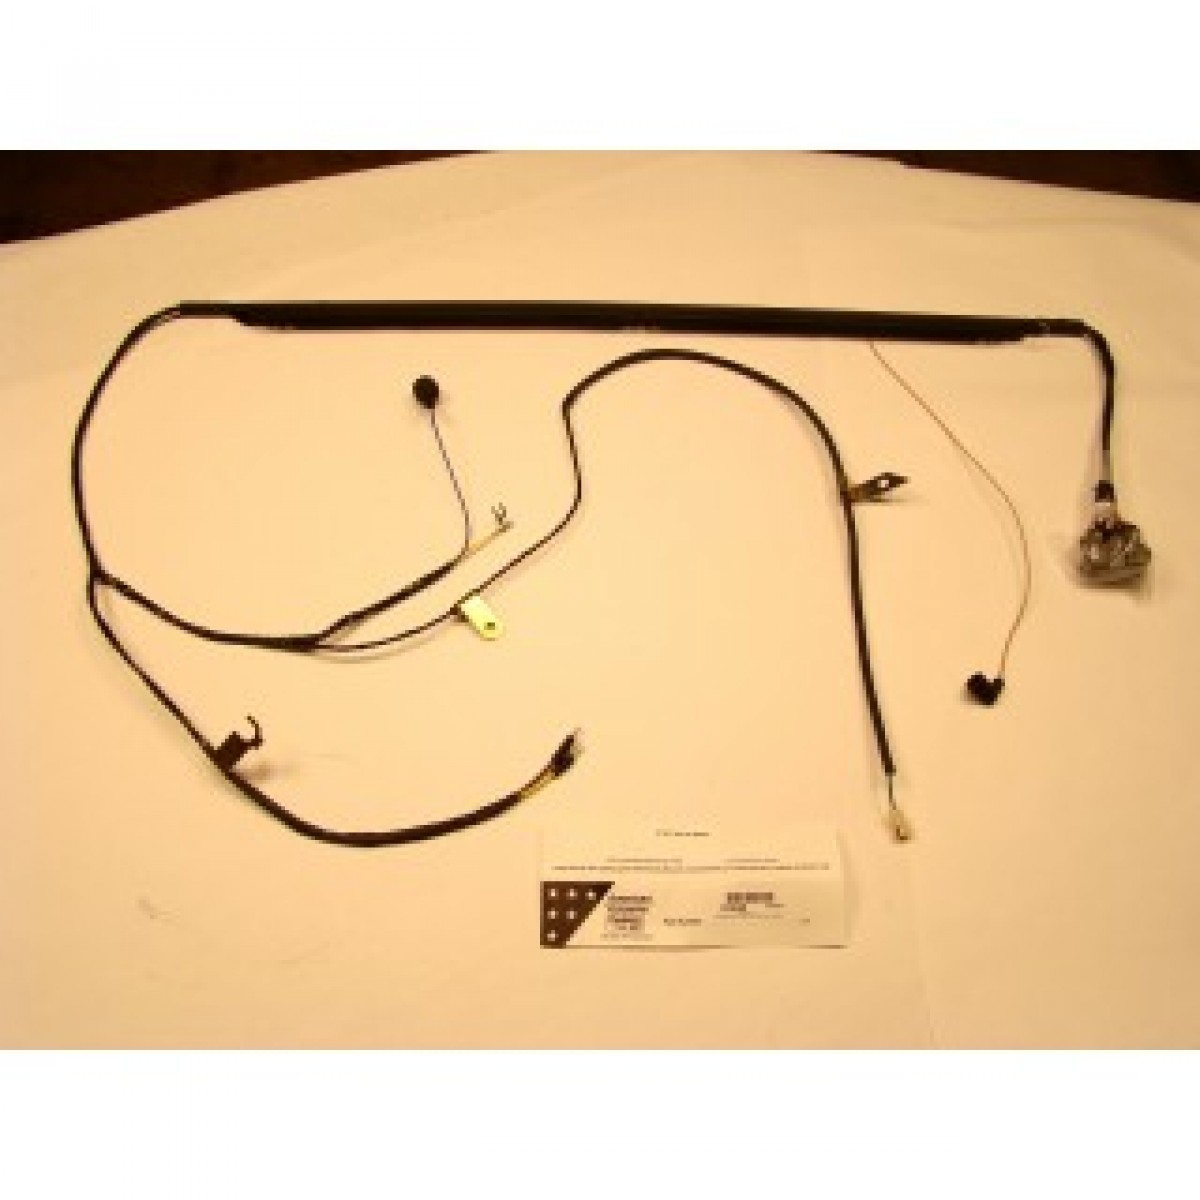 1967 1972 c10 396 engine harness rh code510 com 1970 c10 engine harness  1972 c10 engine harness